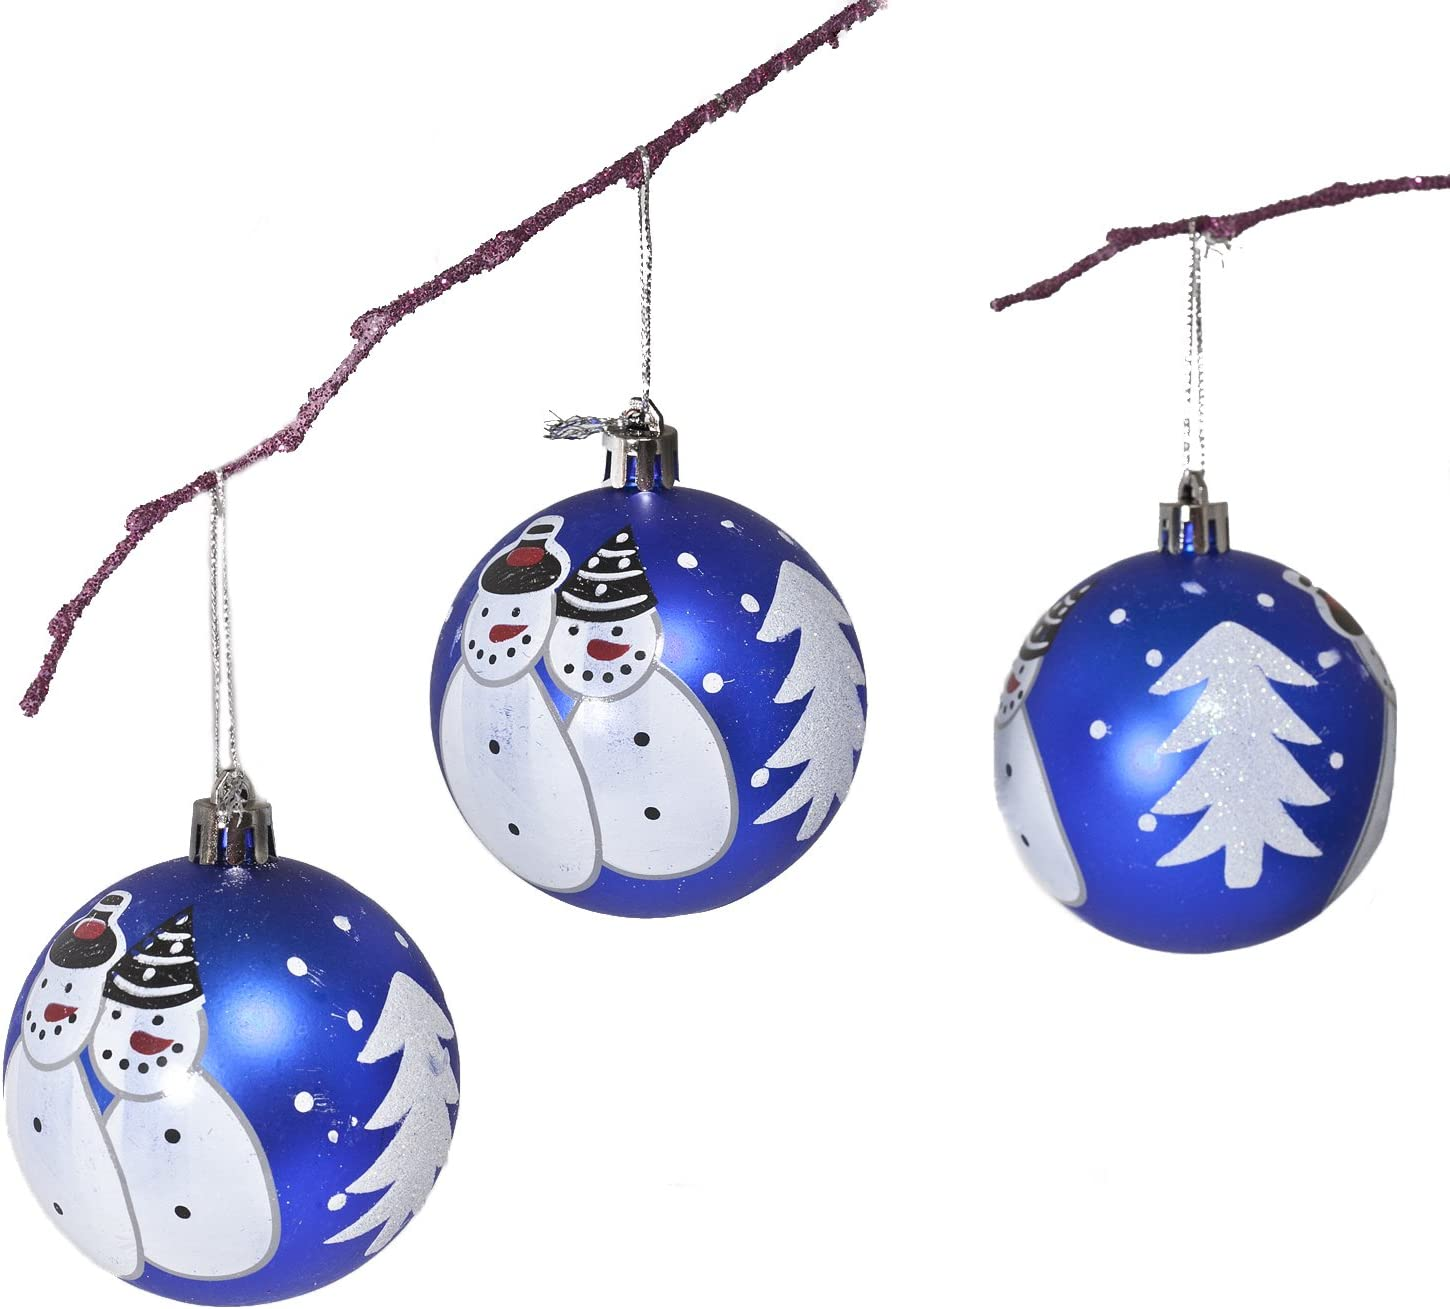 Perfect Holiday Handpainted 3-Piece Shatterproof Christmas Ornament Set 2.75-Inch Green Matte Ball with Peacock and Acrylic Diamond